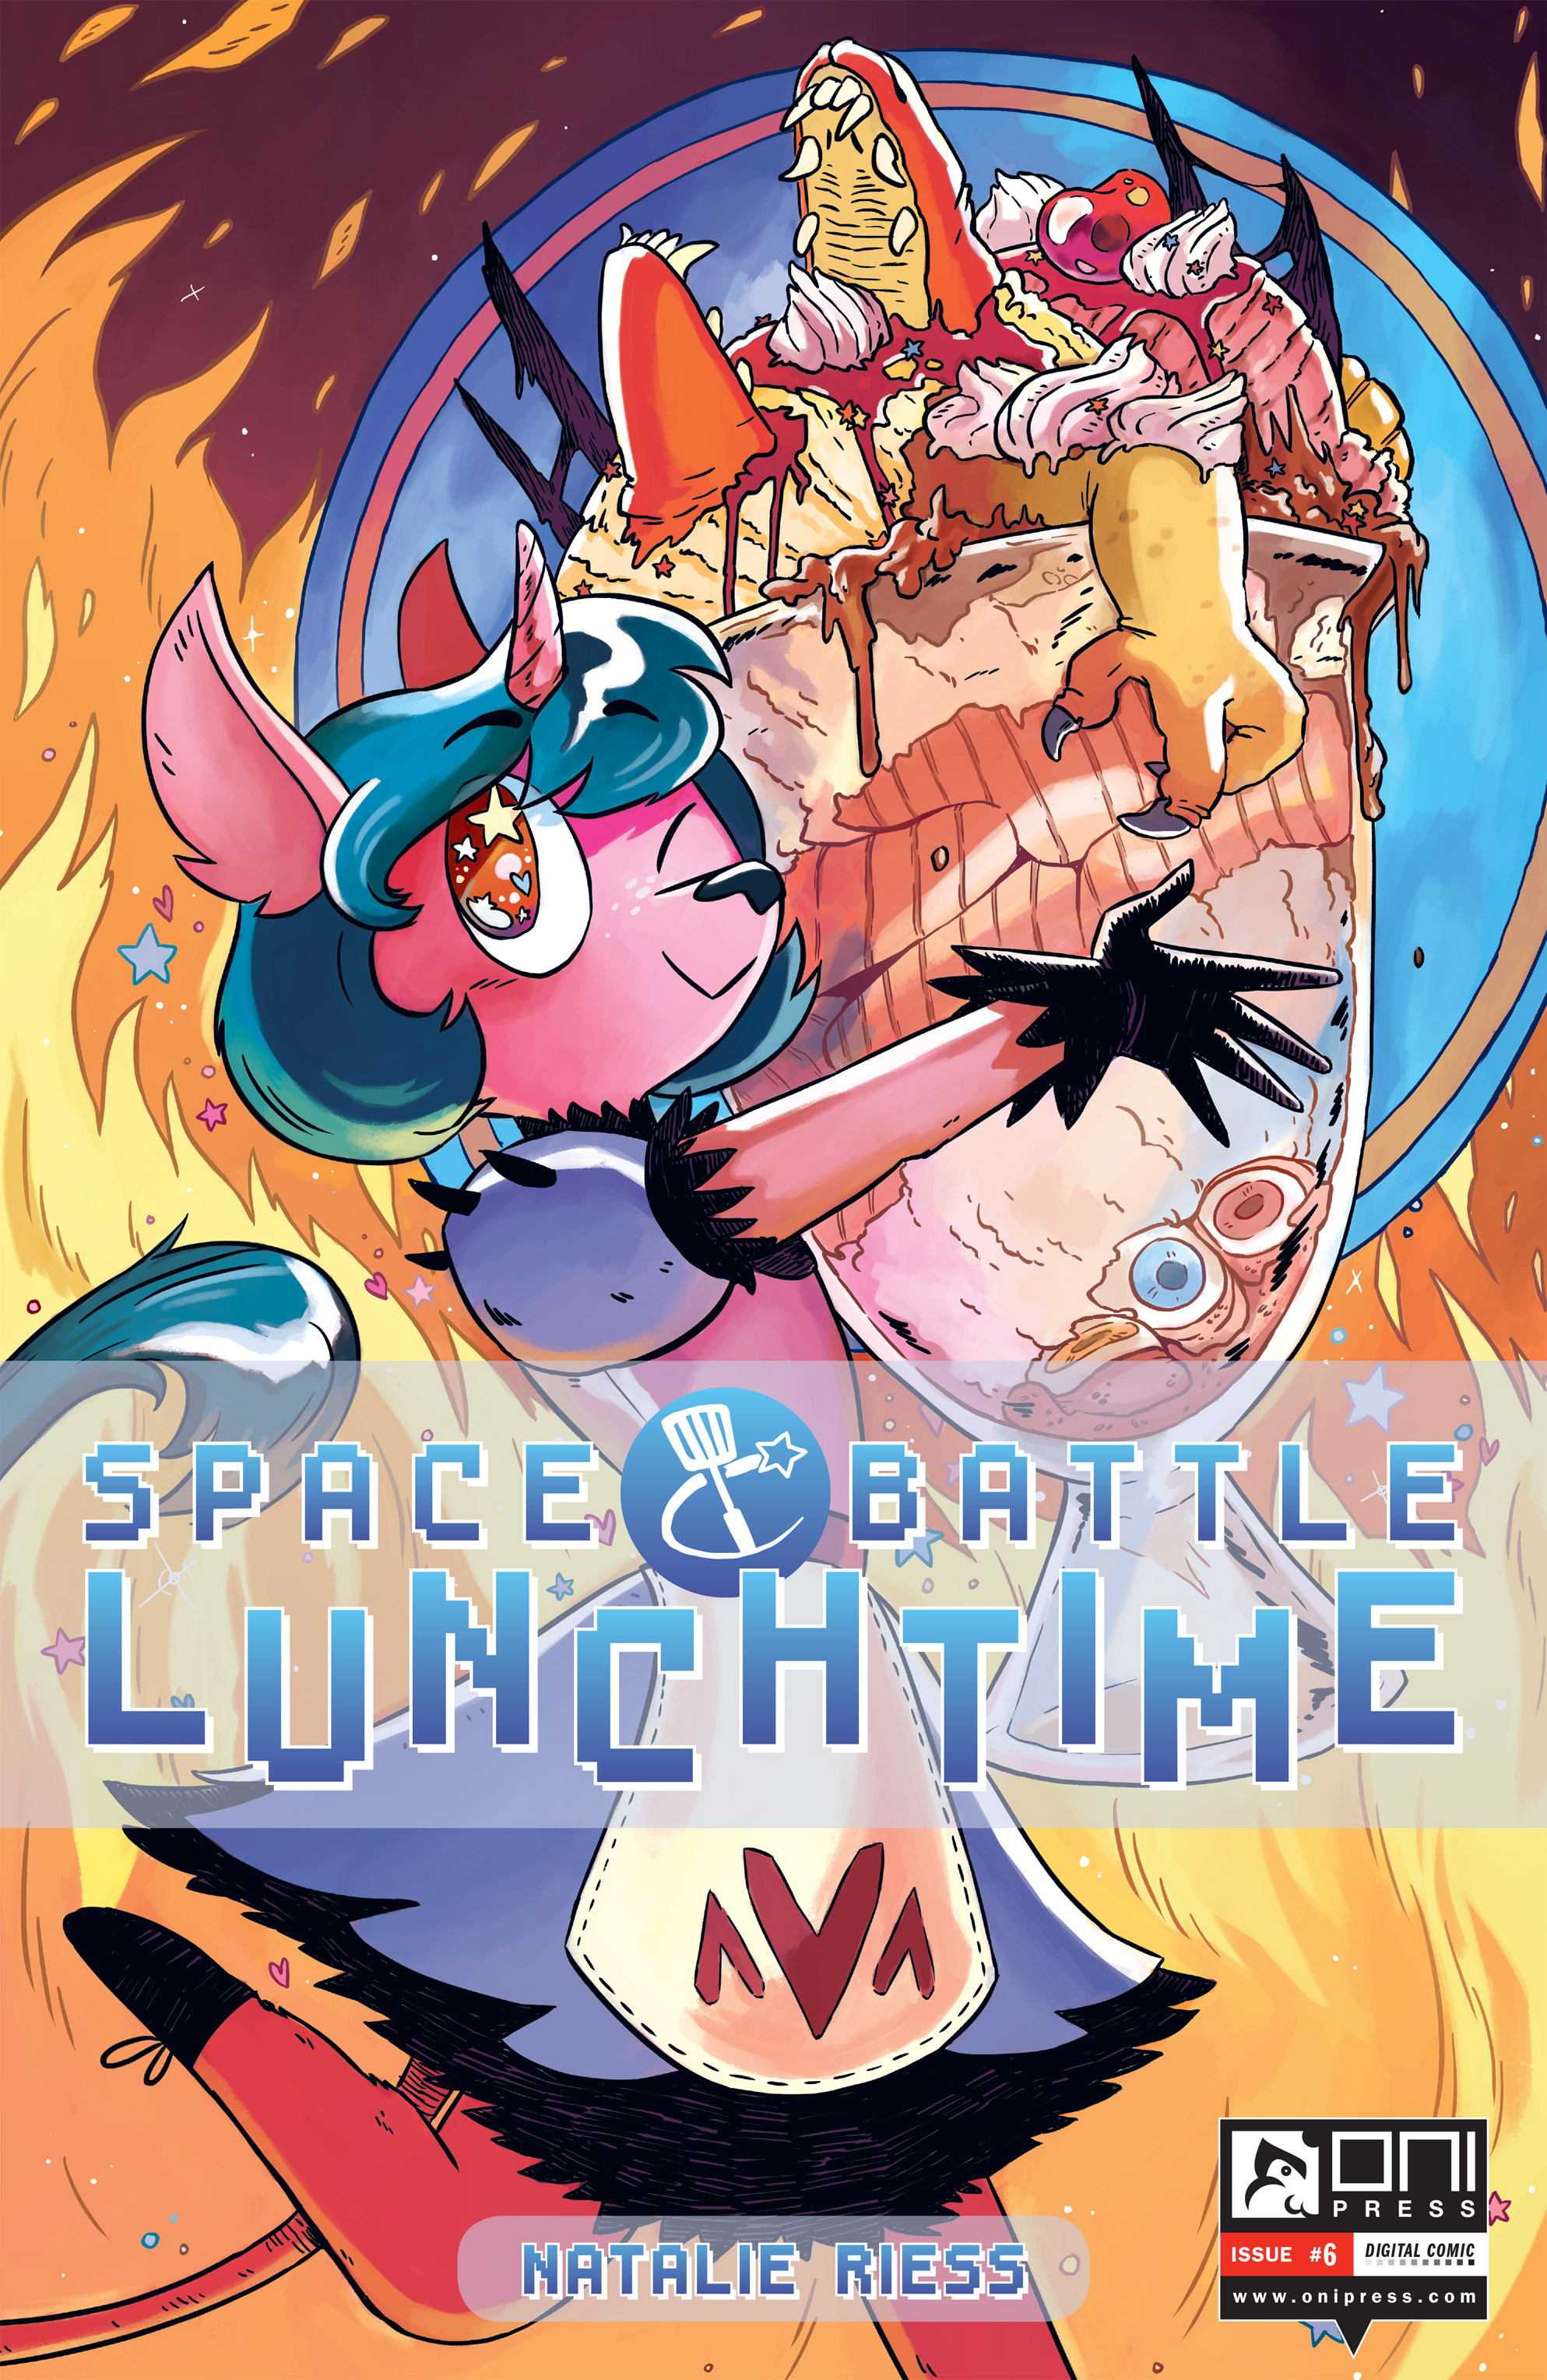 Read online Space Battle Lunchtime comic -  Issue #6 - 1